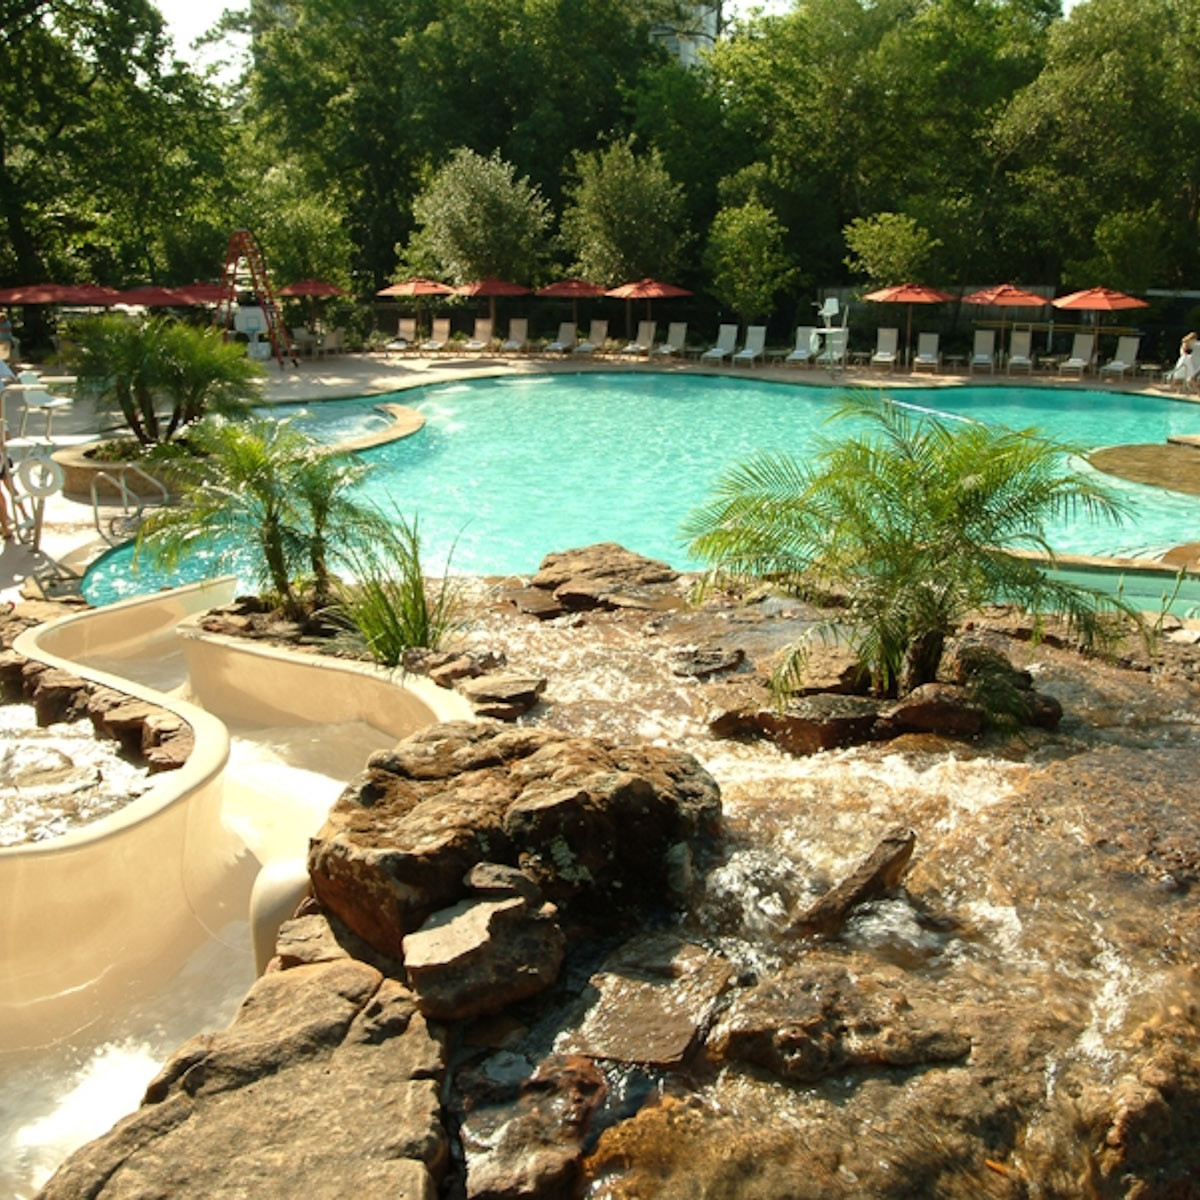 Places-Hotels/Spas-The Houstonian Hotel, Club & Spa pool